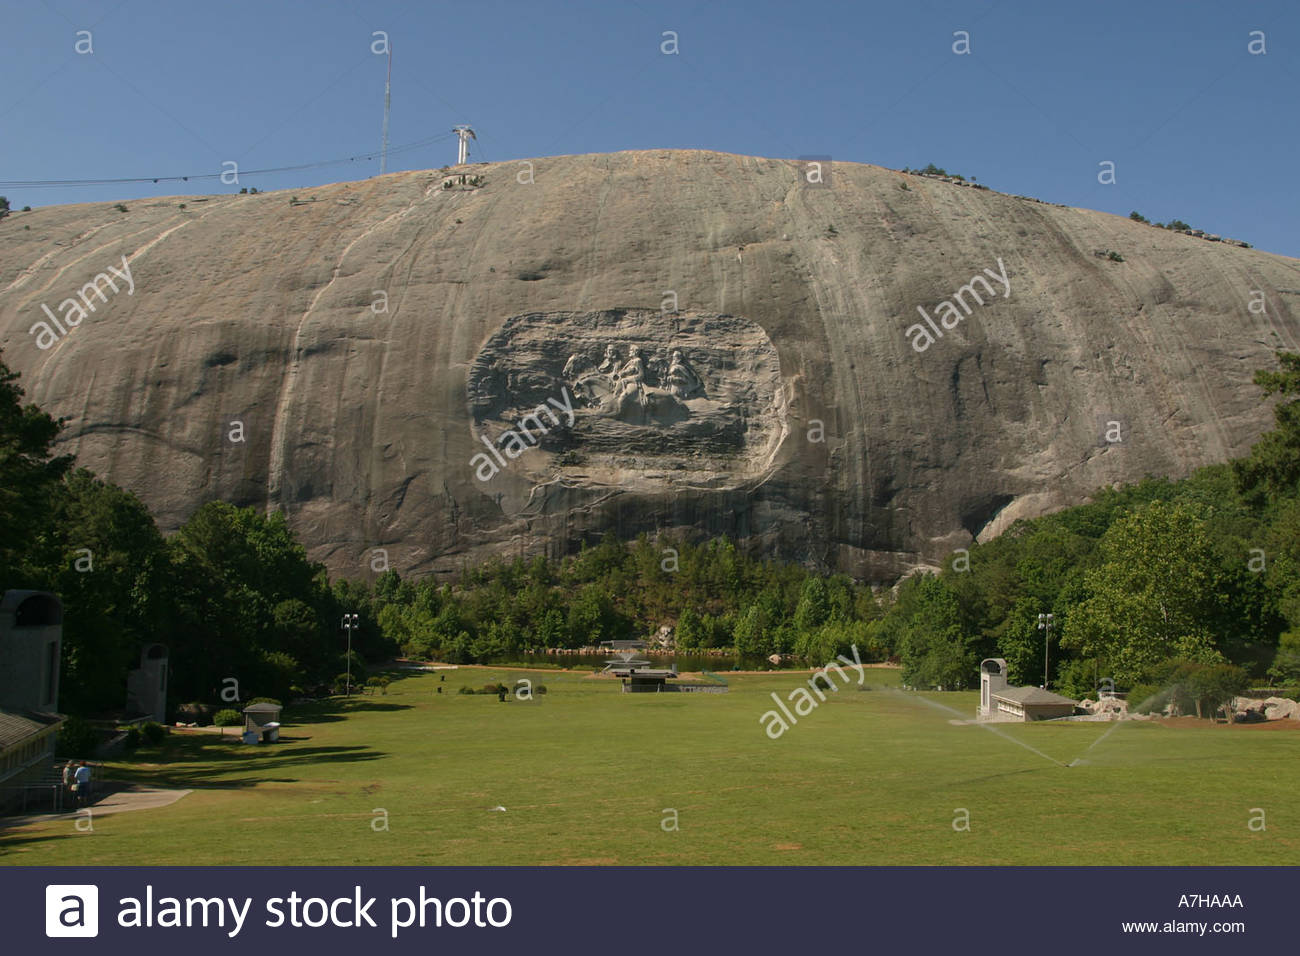 Stone mountain georgia park with tourist attractions and